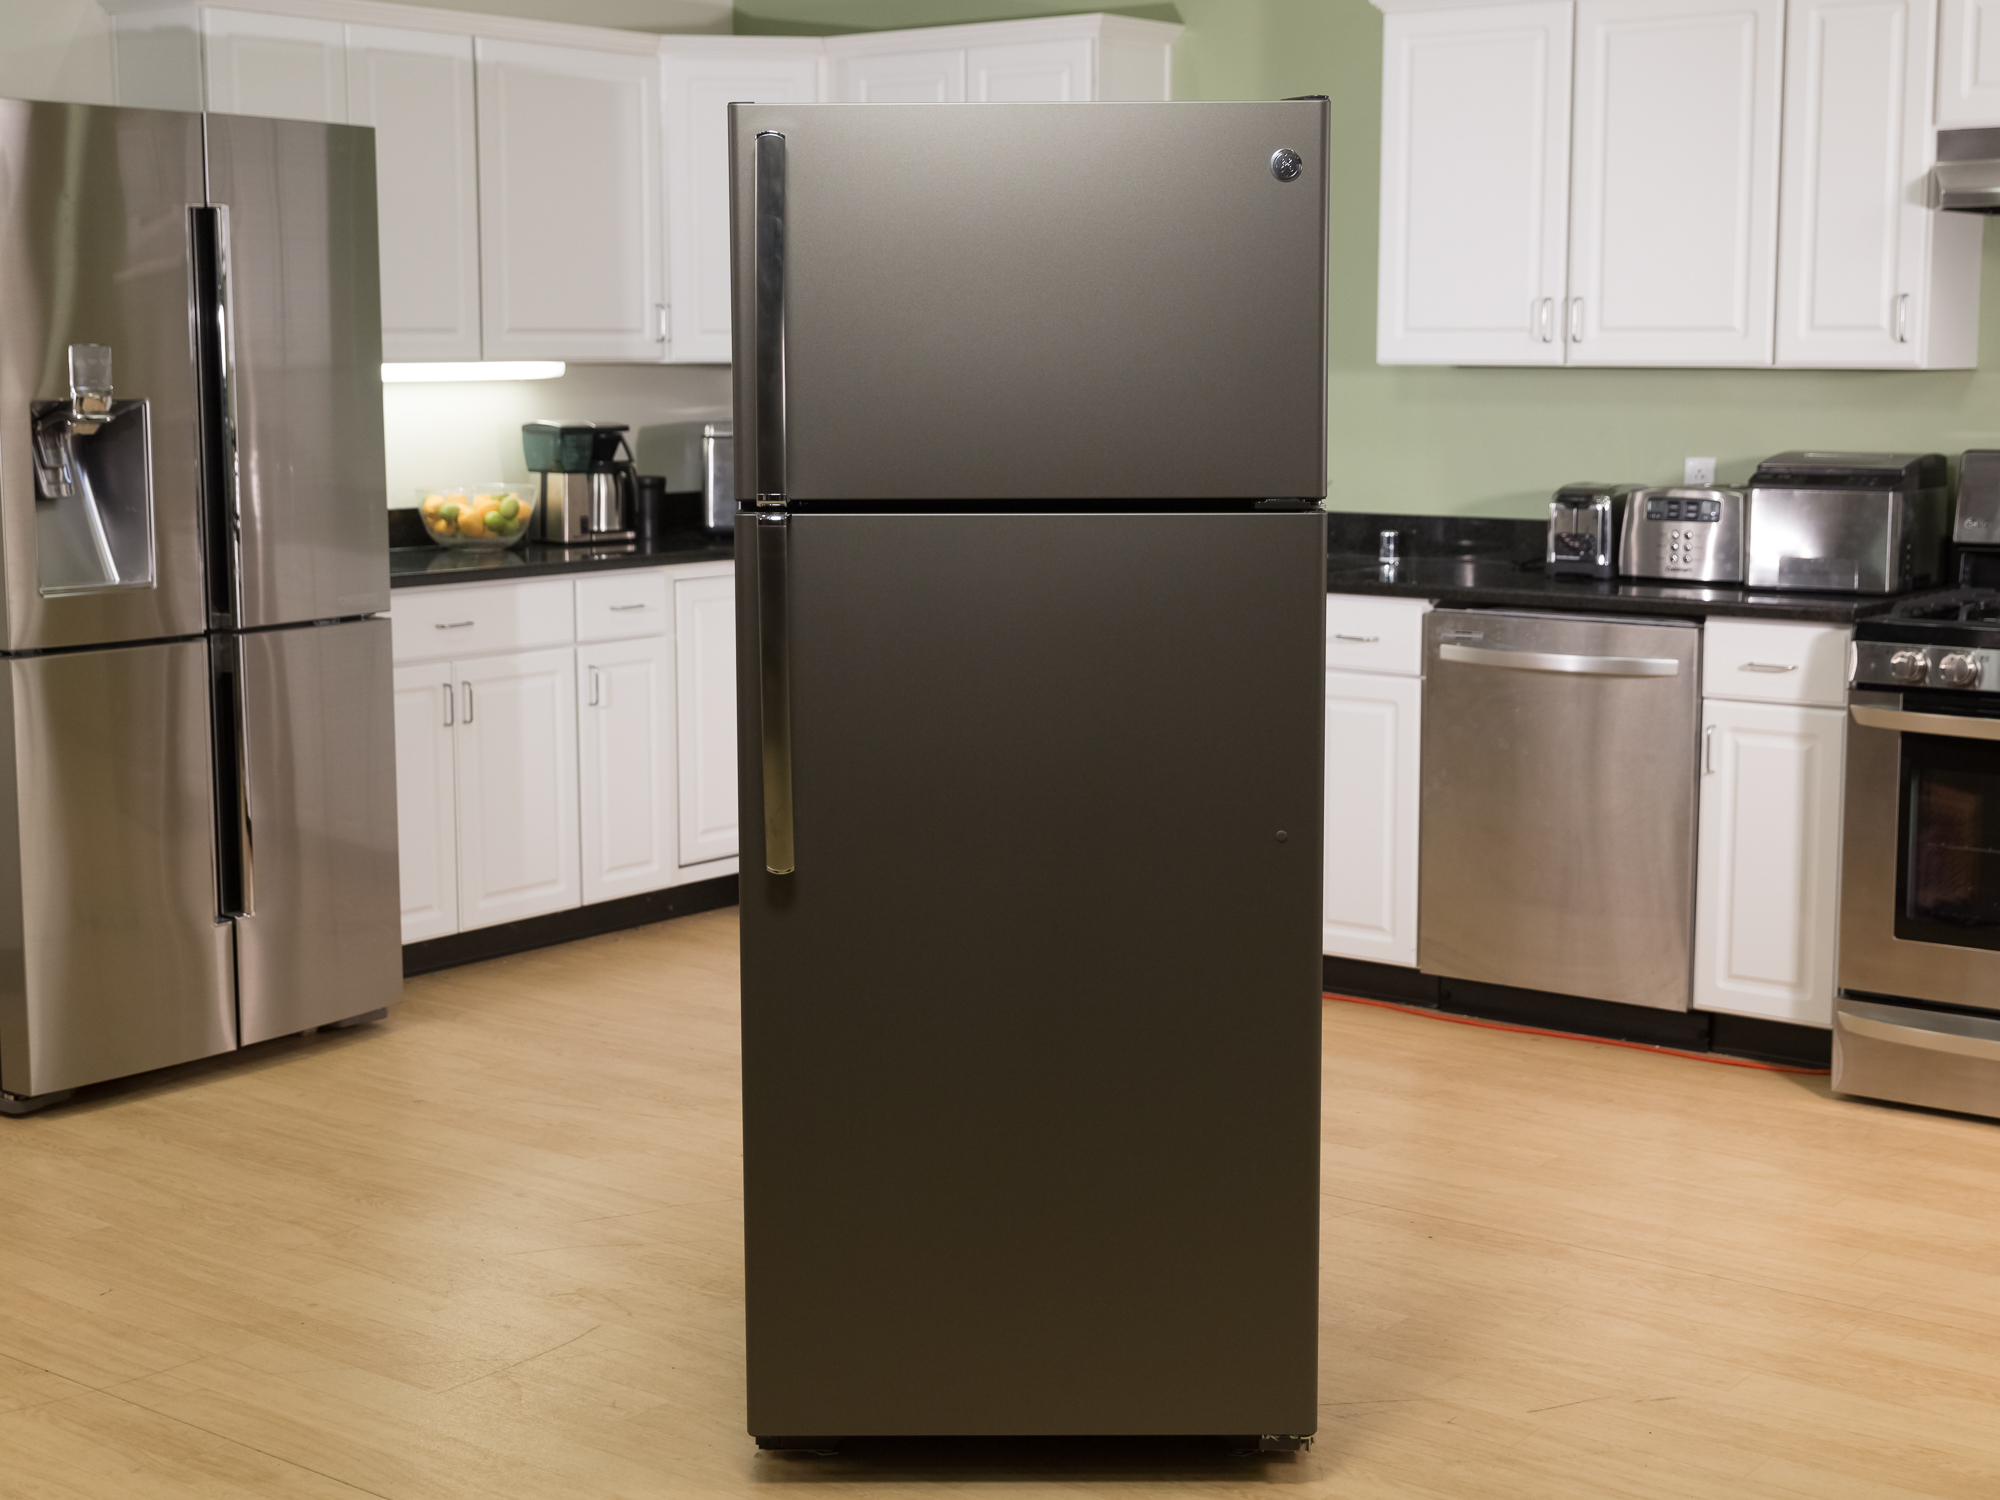 ge-top-freezer-gte18gmhes-product-photos-1.jpg